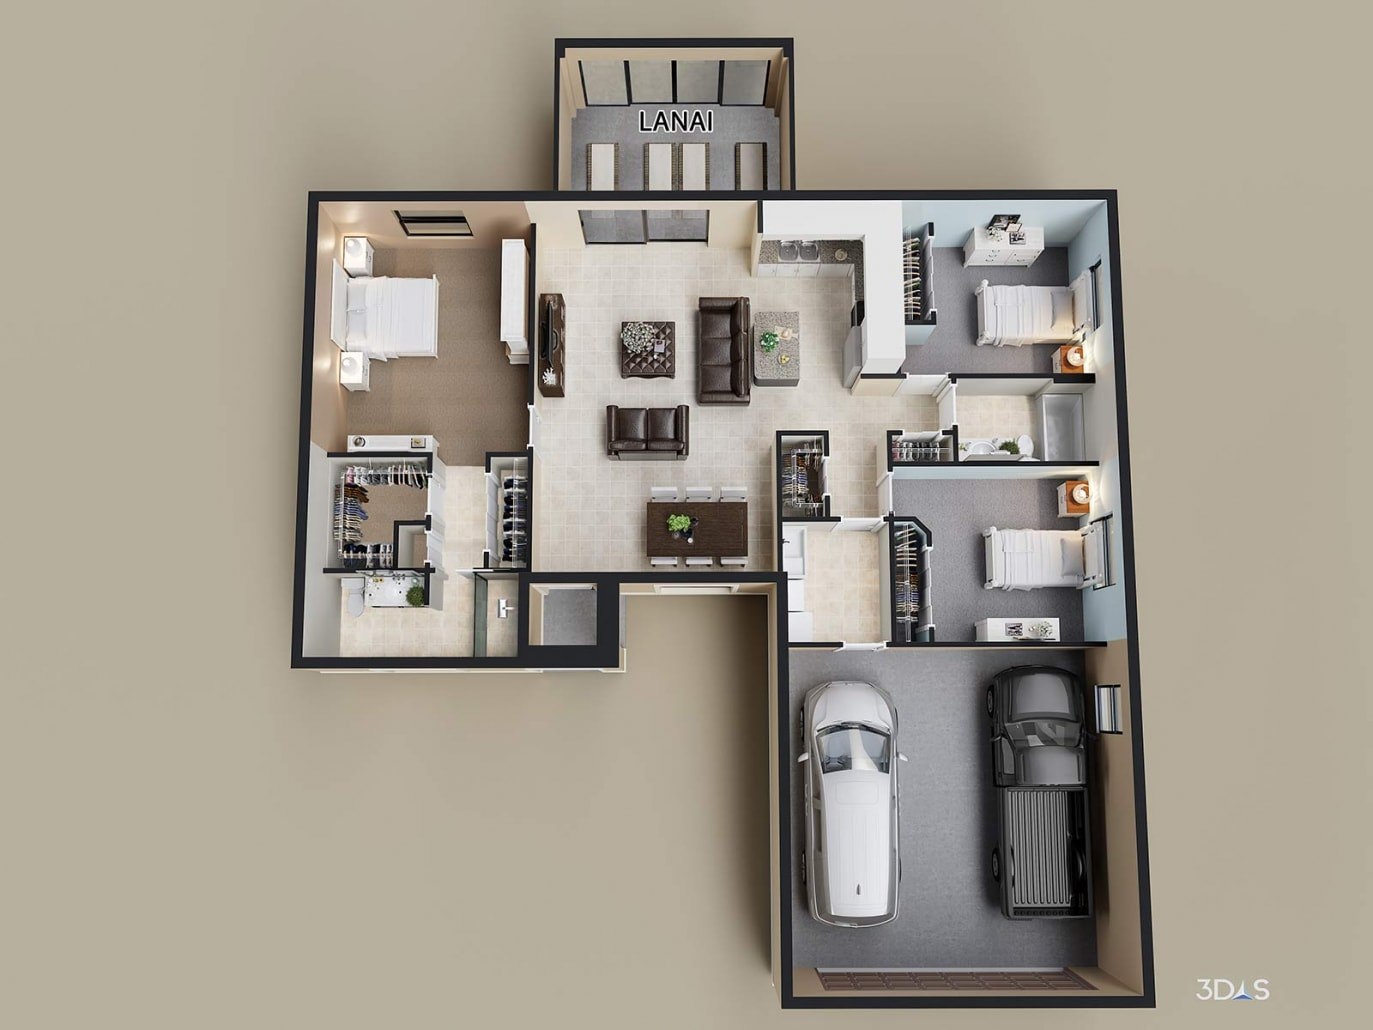 3D Rendering Floorplan Barbados Residence. Tropical Gulf Acres, TPG residential homes is located in Punta Gorda, Florida